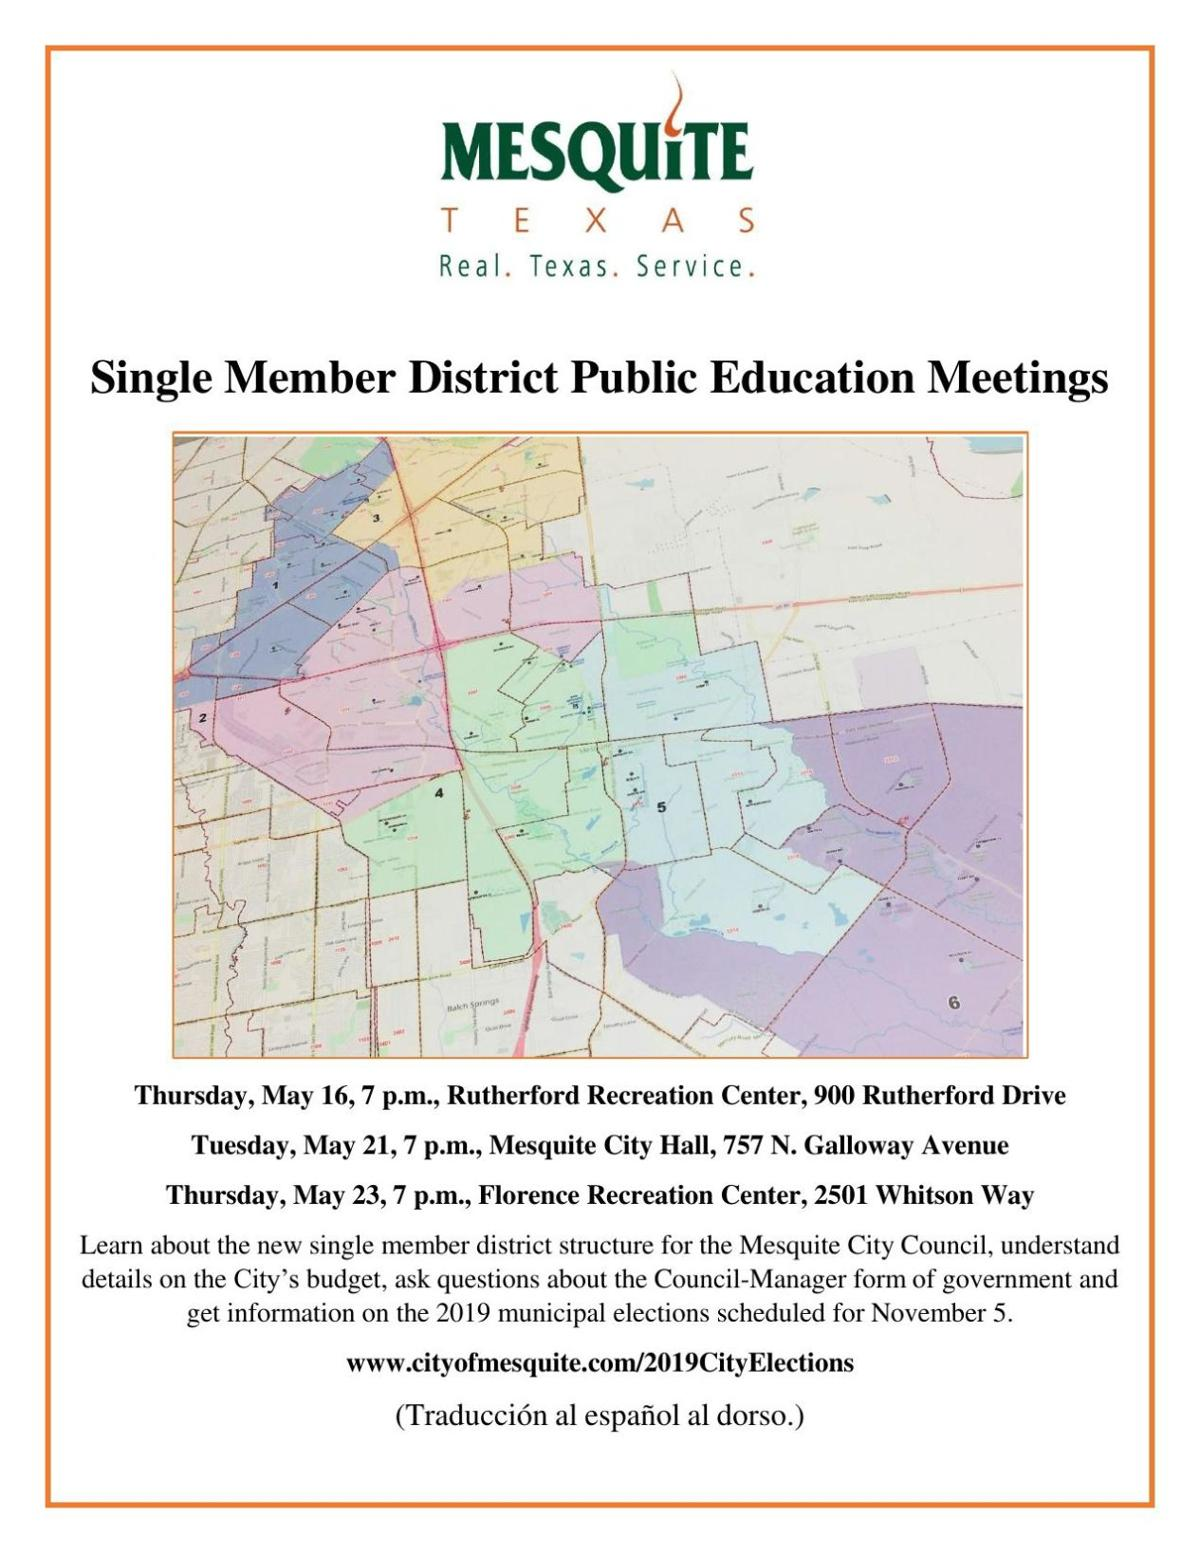 Mesquite city staff educates public on single member districts